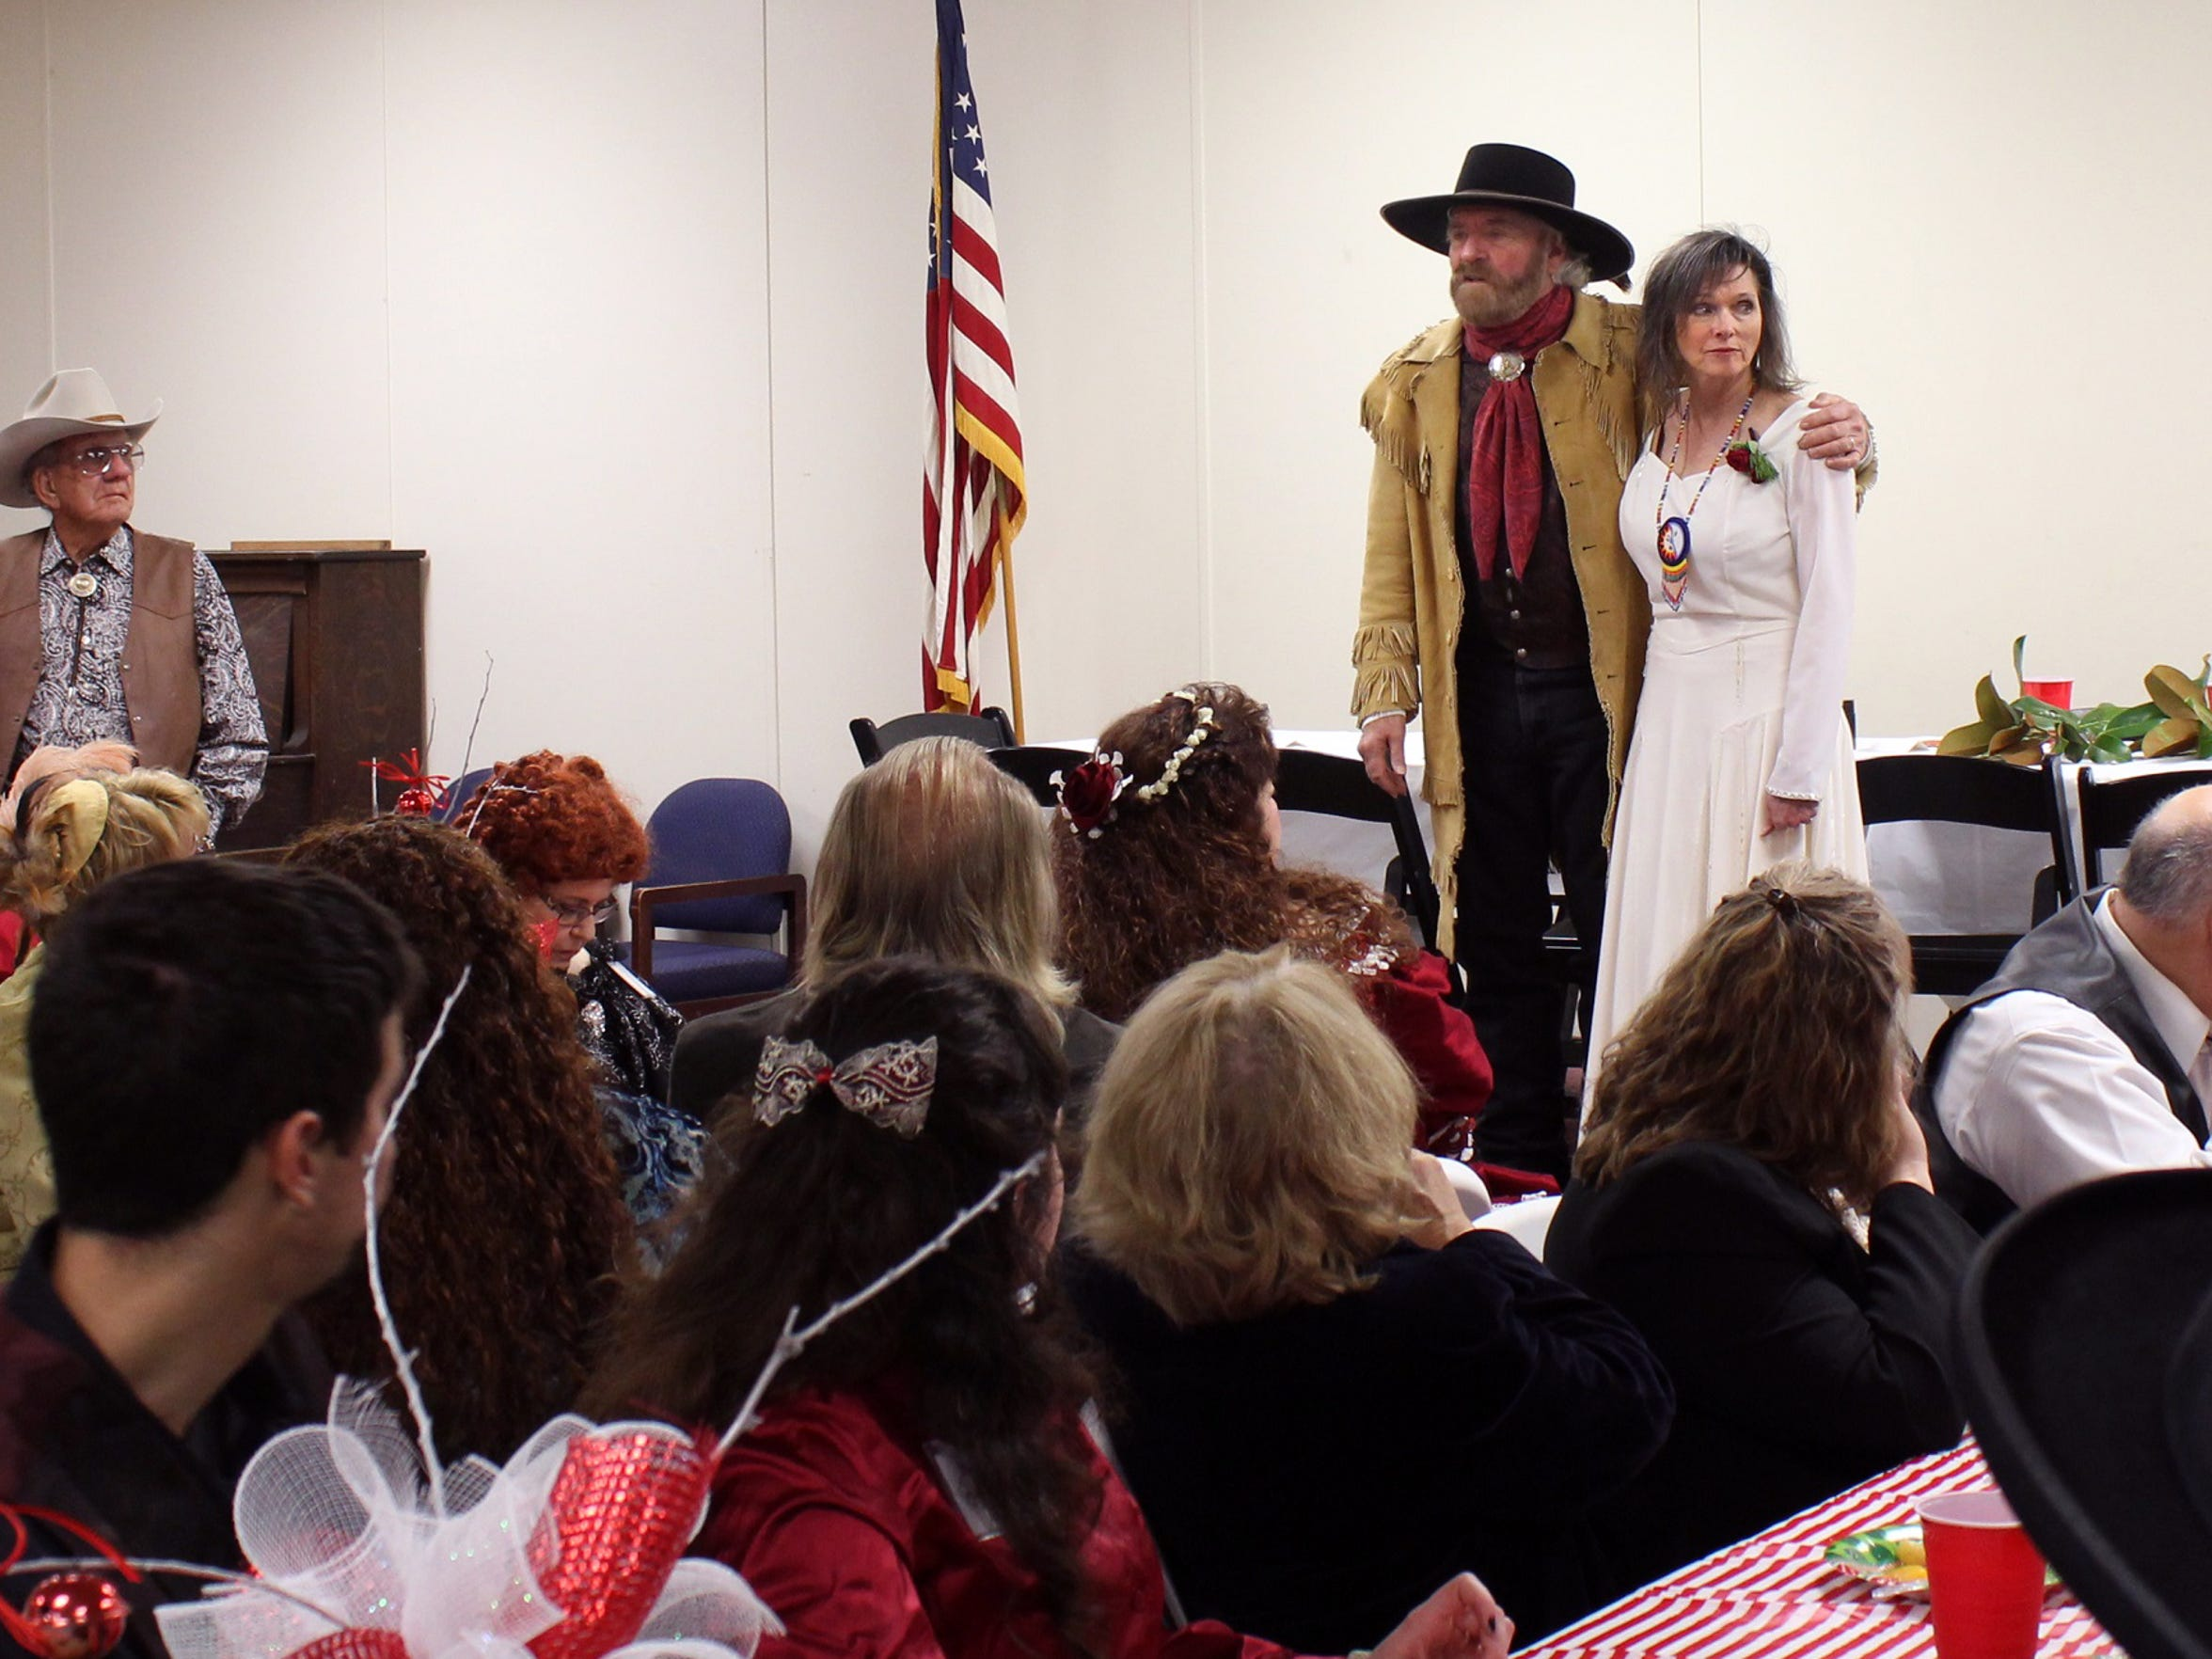 Michael Martin Murphey and his new wife, Cynthia, thank those gathered in a hall across the street from Pioneer Hall in Anson for attending their wedding and supporting the Texas Cowboys' Christmas Ball.